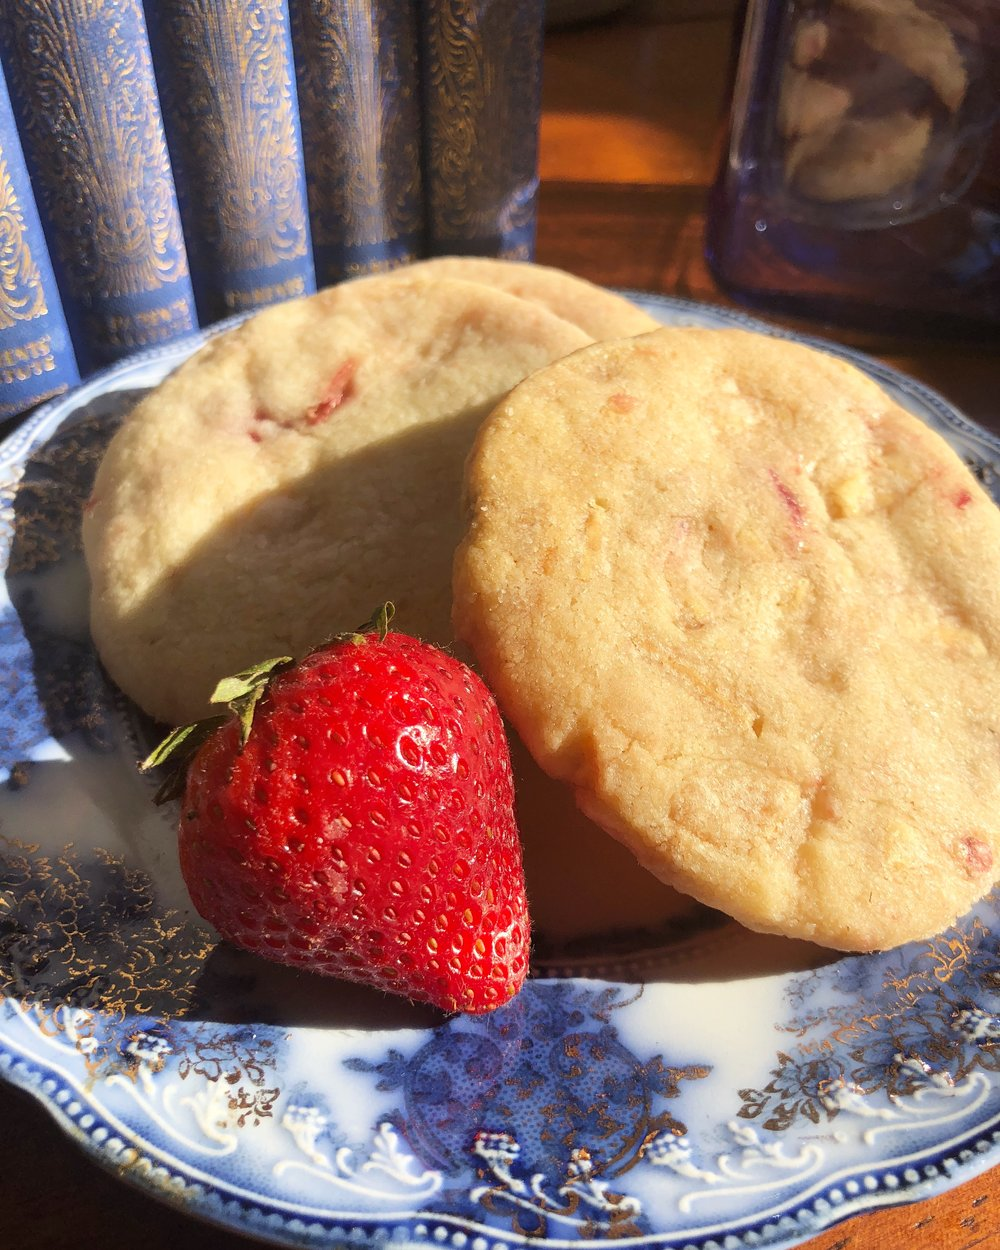 Strawberry and Cream Shortbread Cookies